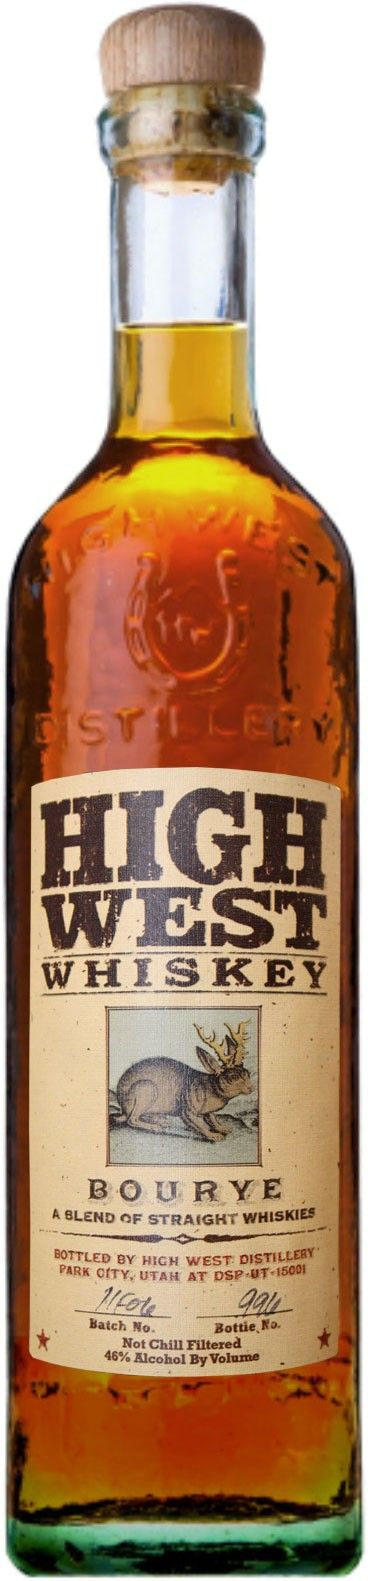 High West Bourye Whiskey.  Aged for up to 16 years, this blend of bourbon and rye #whiskey is finally being re-released after years as one of High West's hardest to find and most desired whiskies. | @Caskers